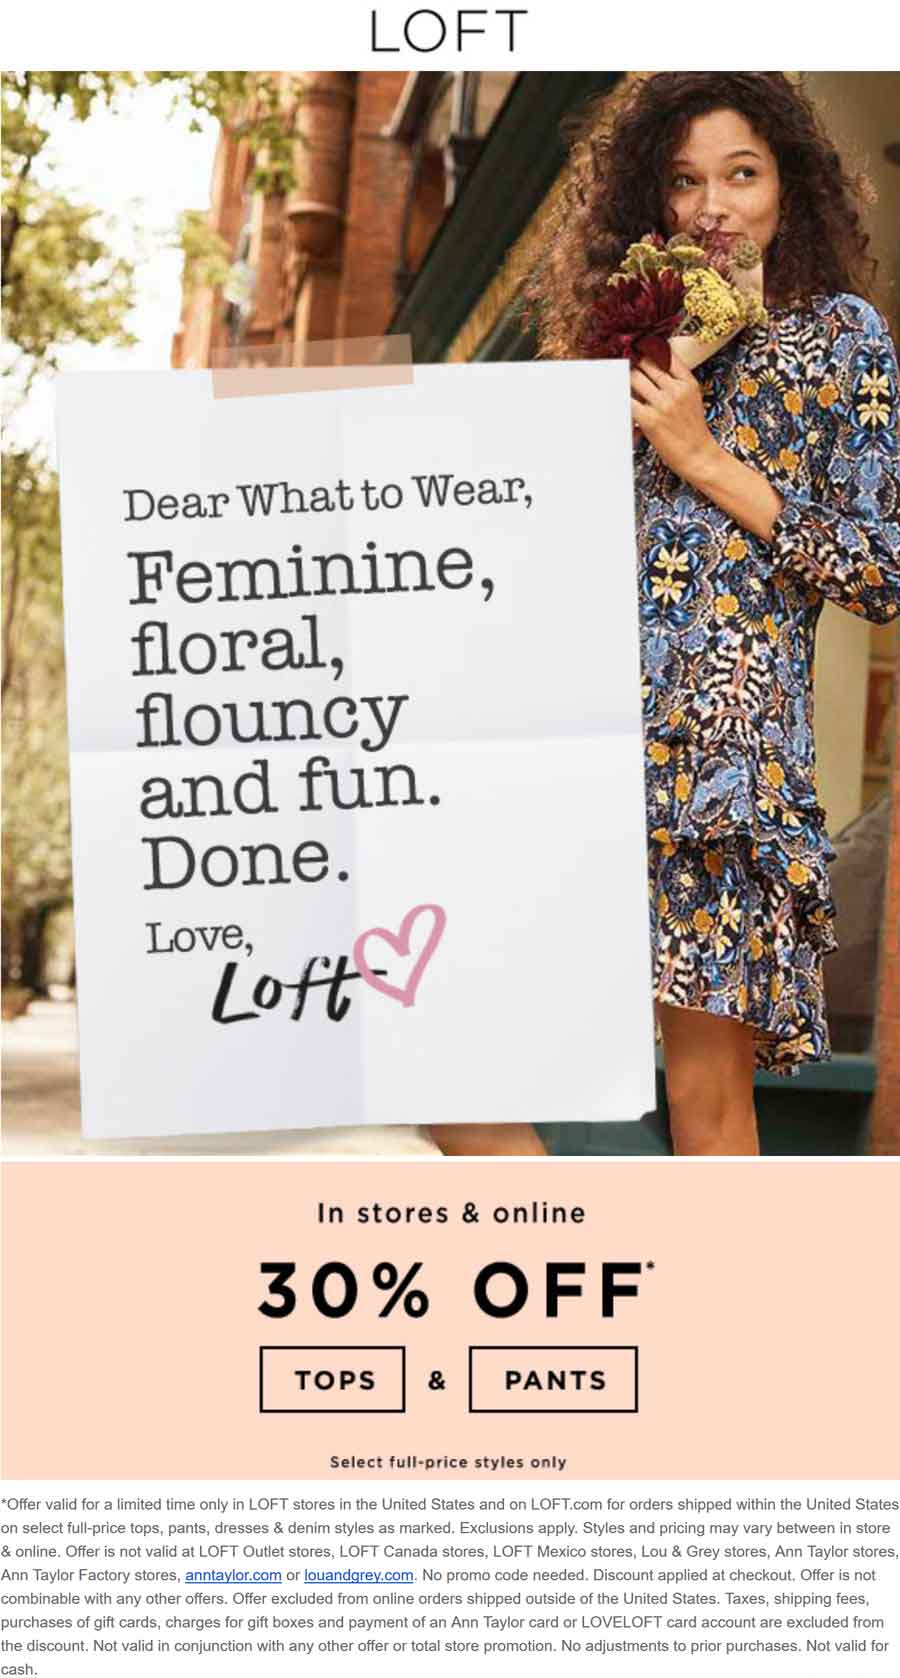 LOFT Coupon January 2018 30% off tops & pants at LOFT, ditto online